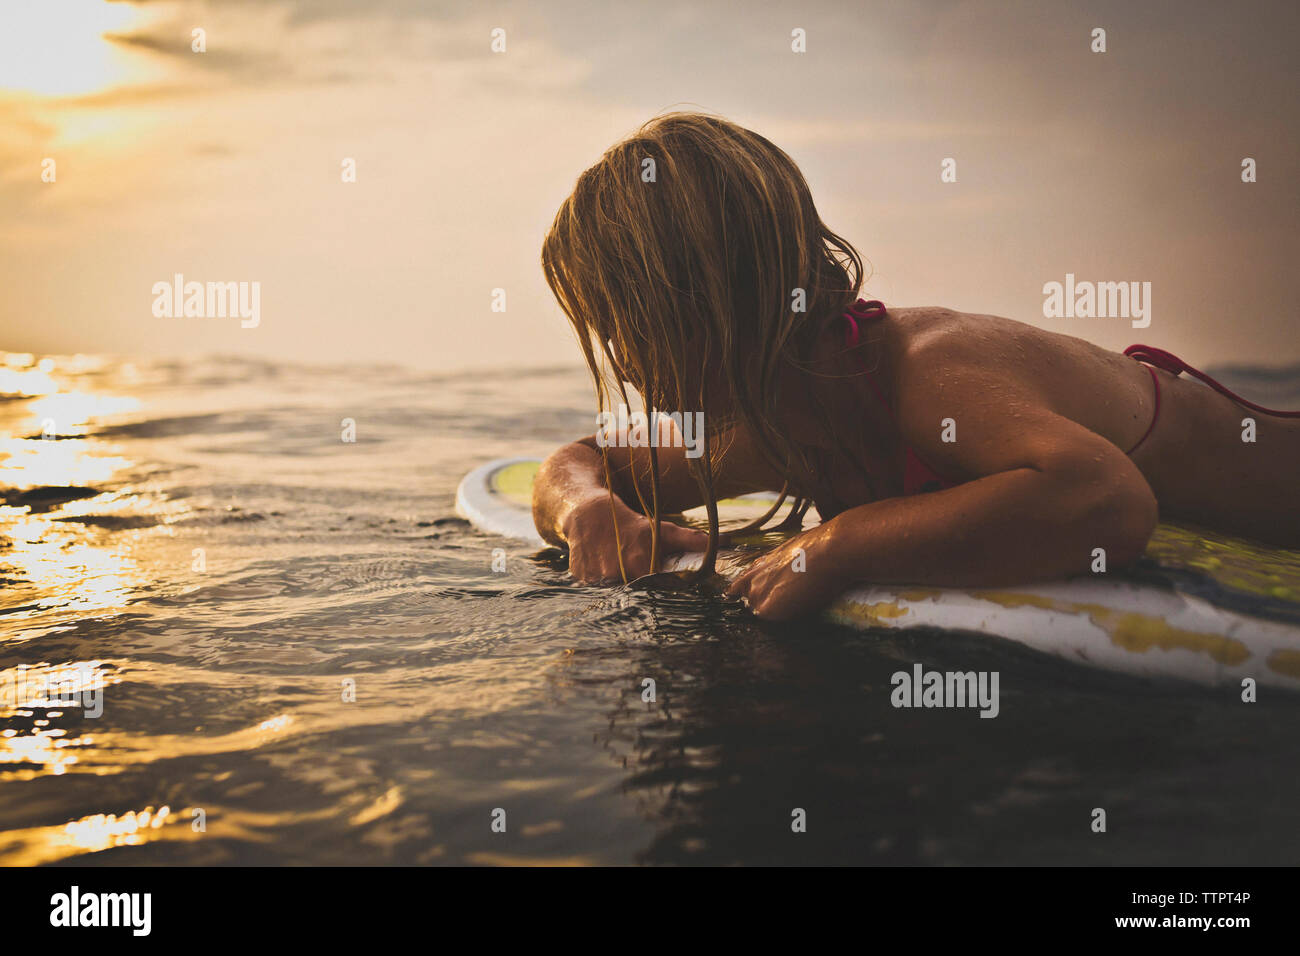 Woman lying on surfboard in sea against sky - Stock Image